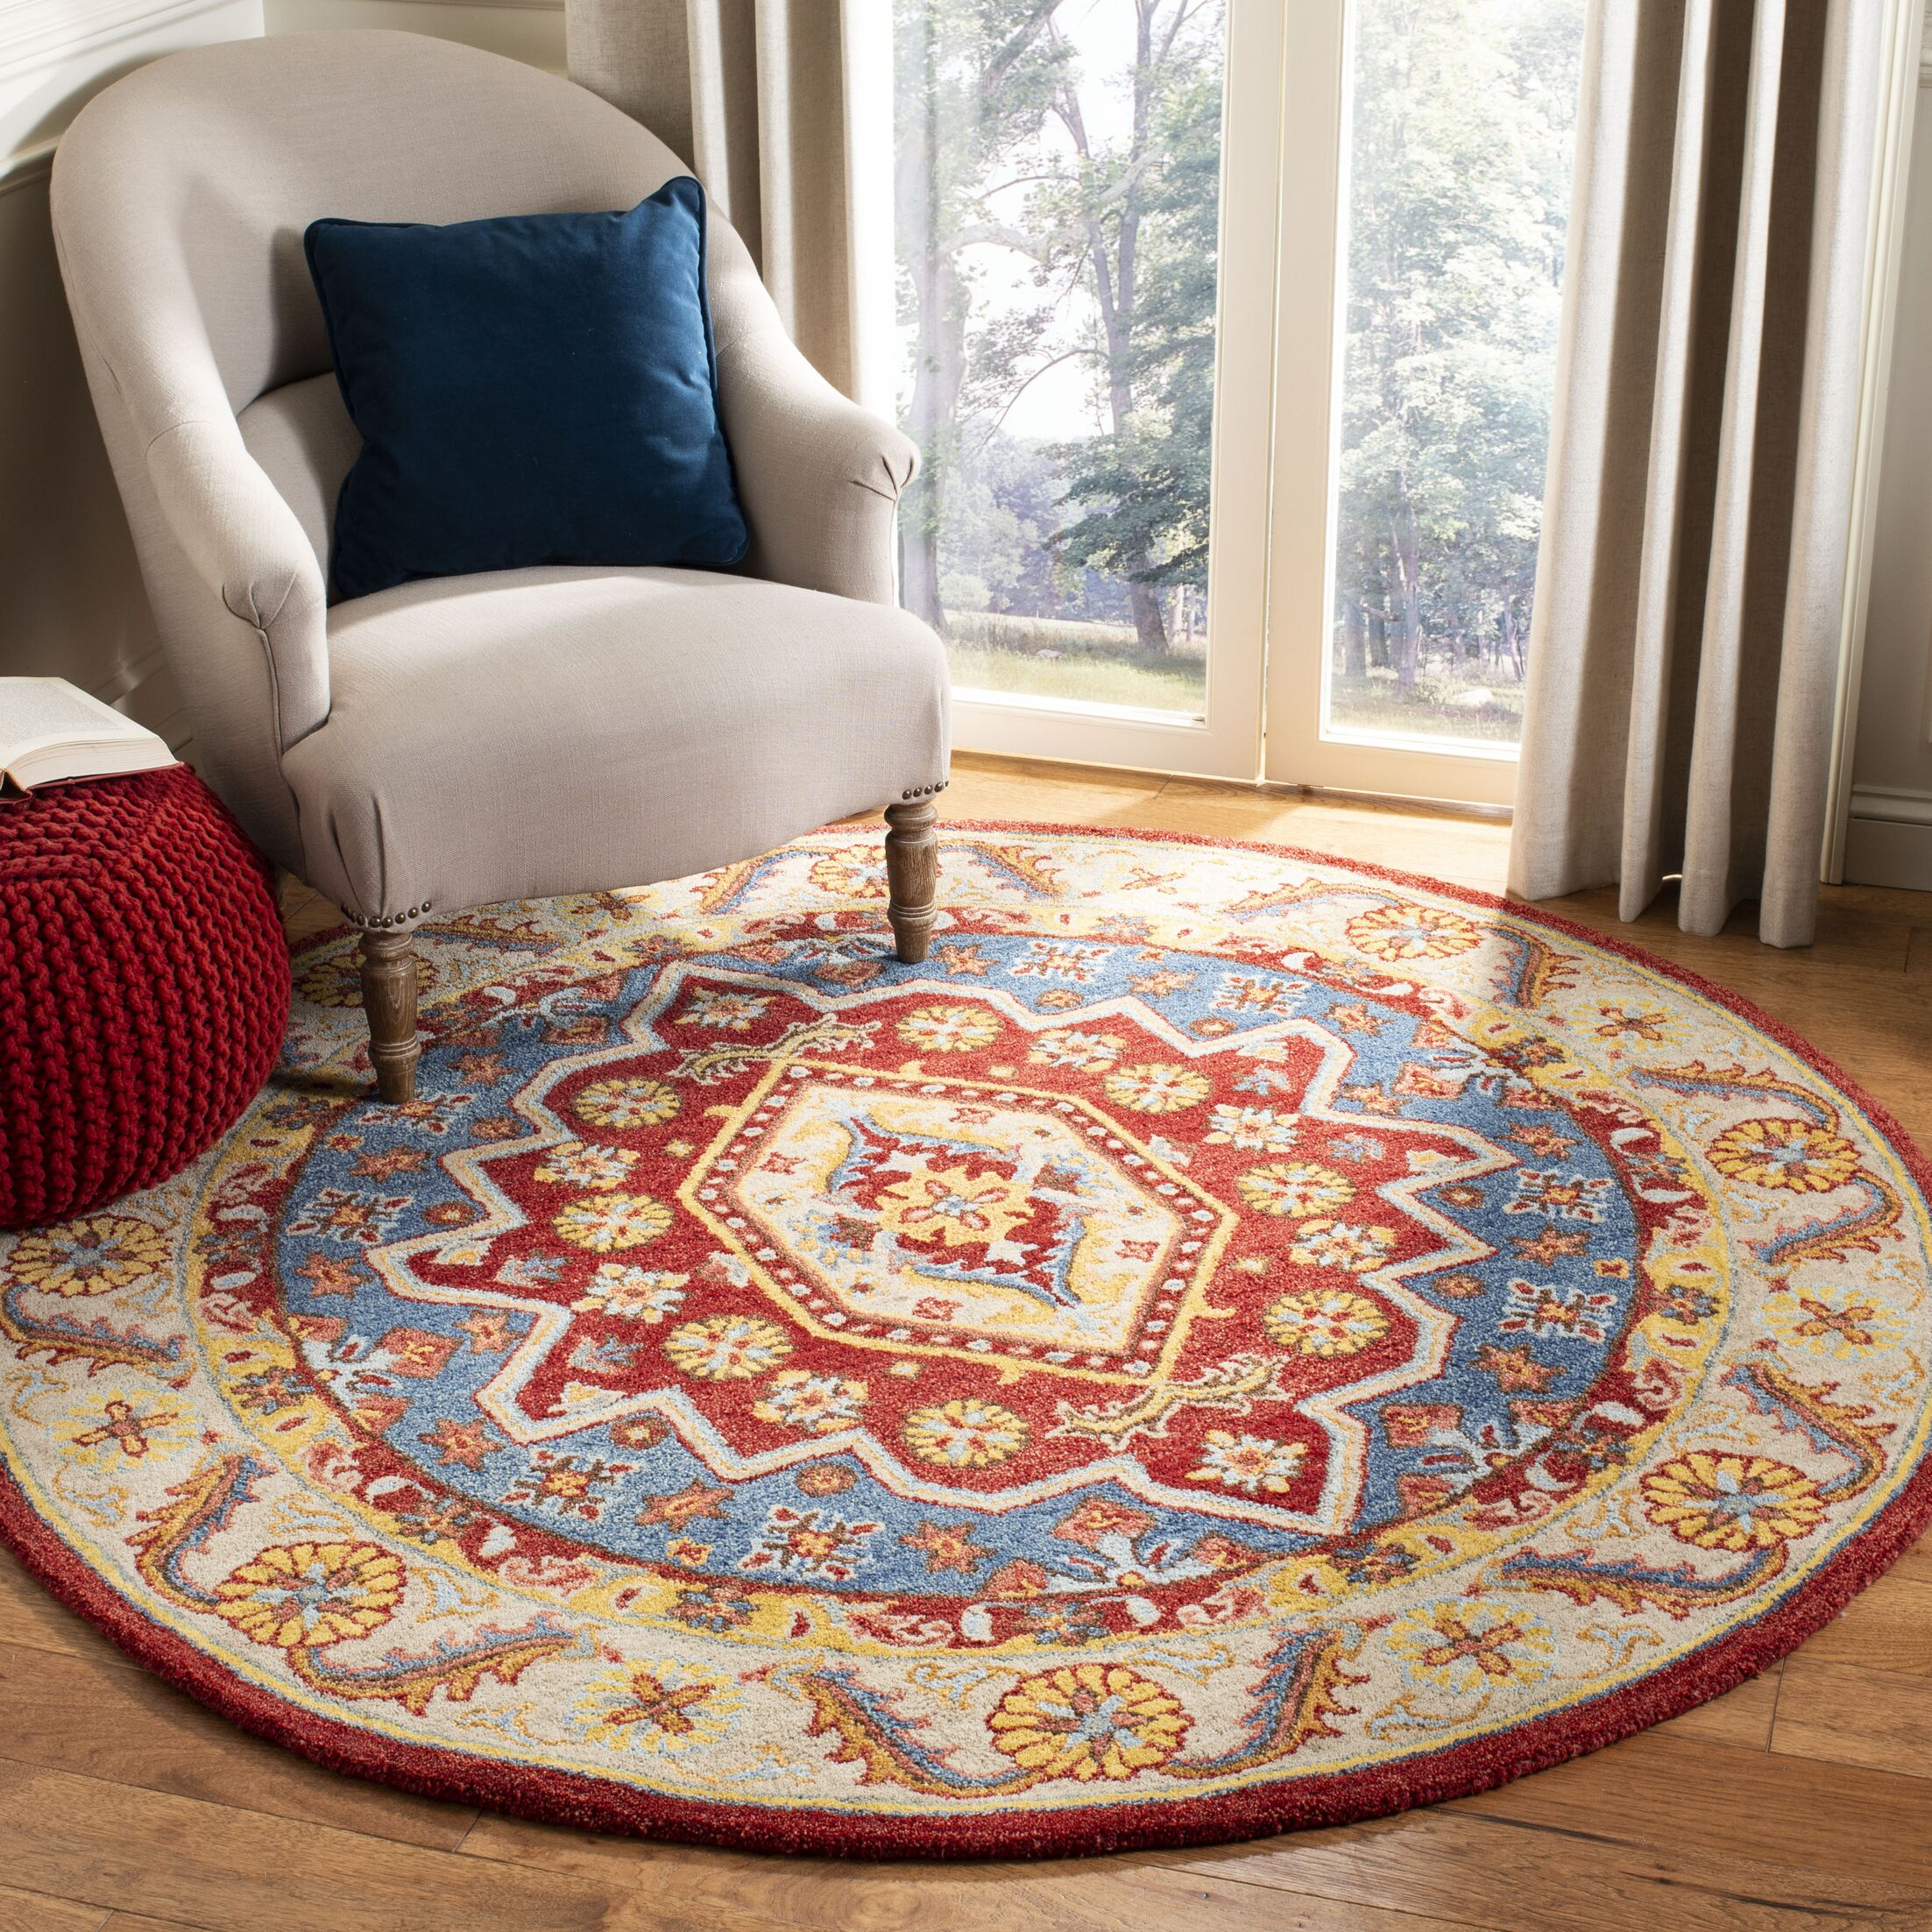 Clymer Antiquity Hand-Tufted Red/Beige Area Rug Rug Size: Round 6'